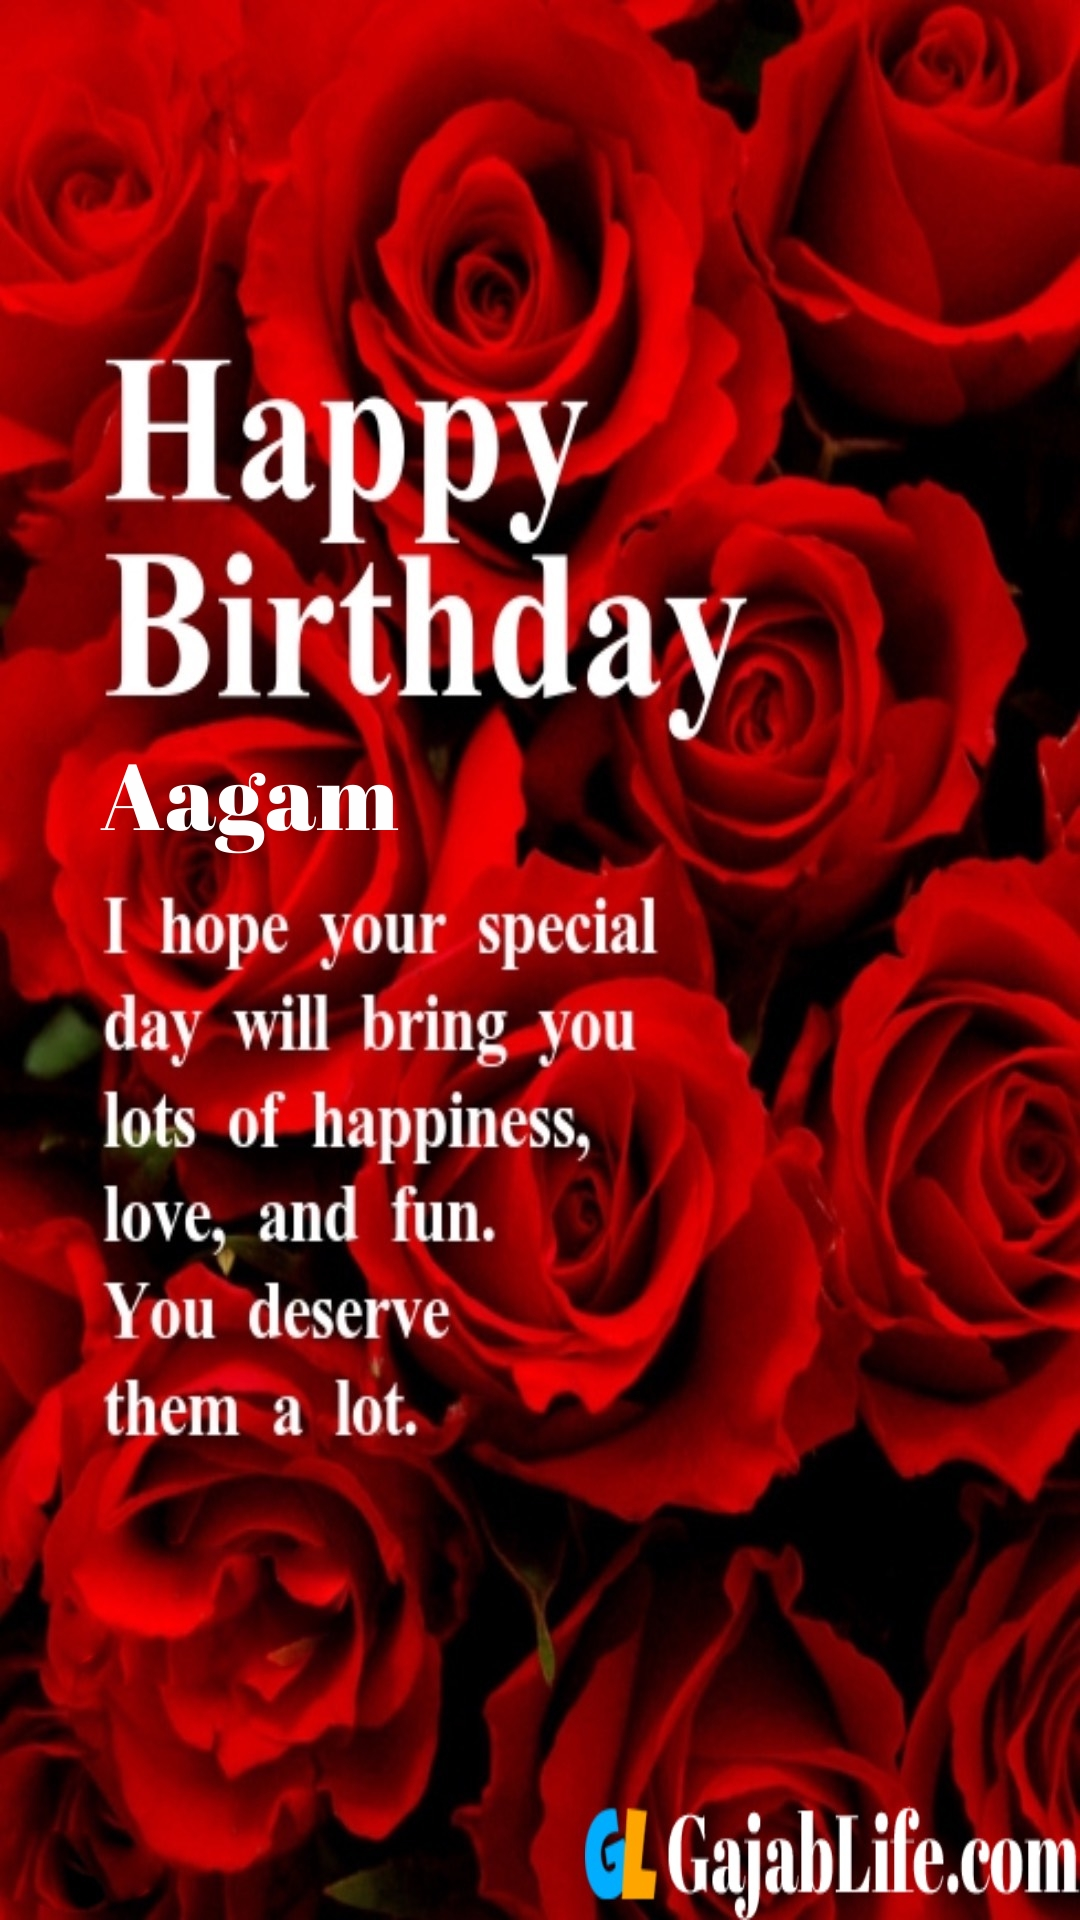 Aagam birthday greeting card with rose & love